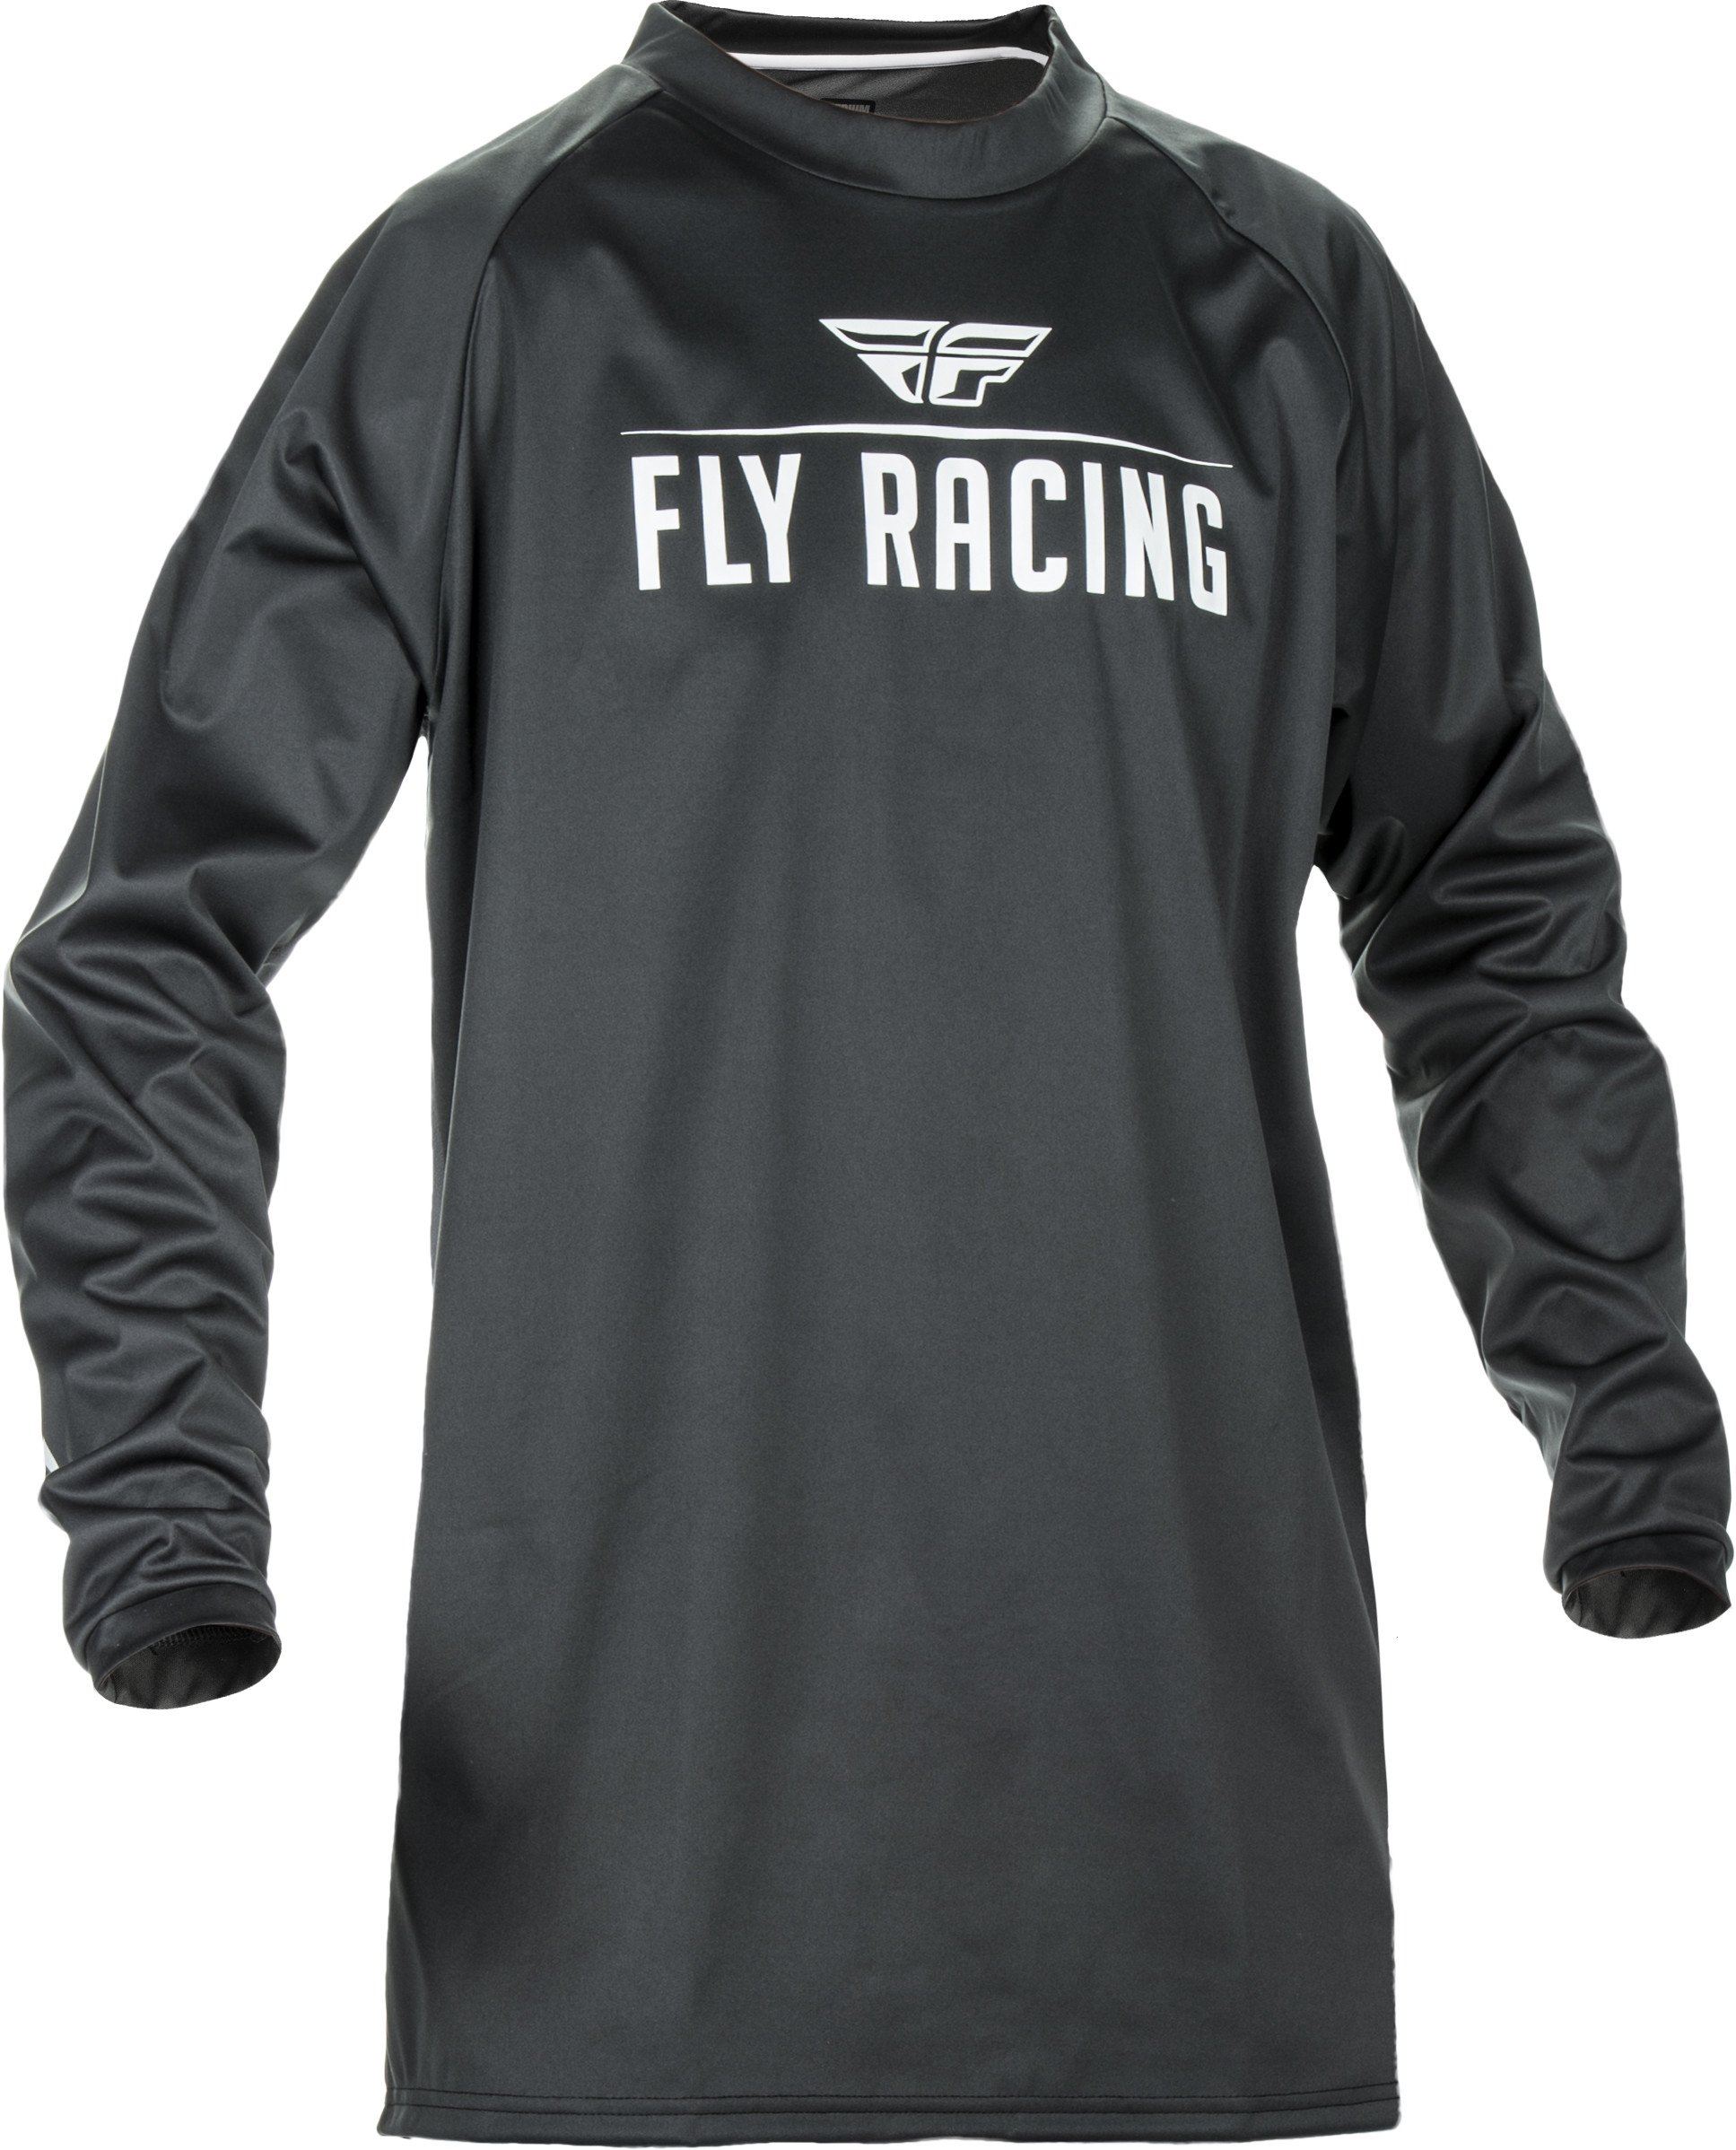 Black/Grey Sz XXL Fly Racing Windproof Motocross Jersey by Fly Racing (Image #1)